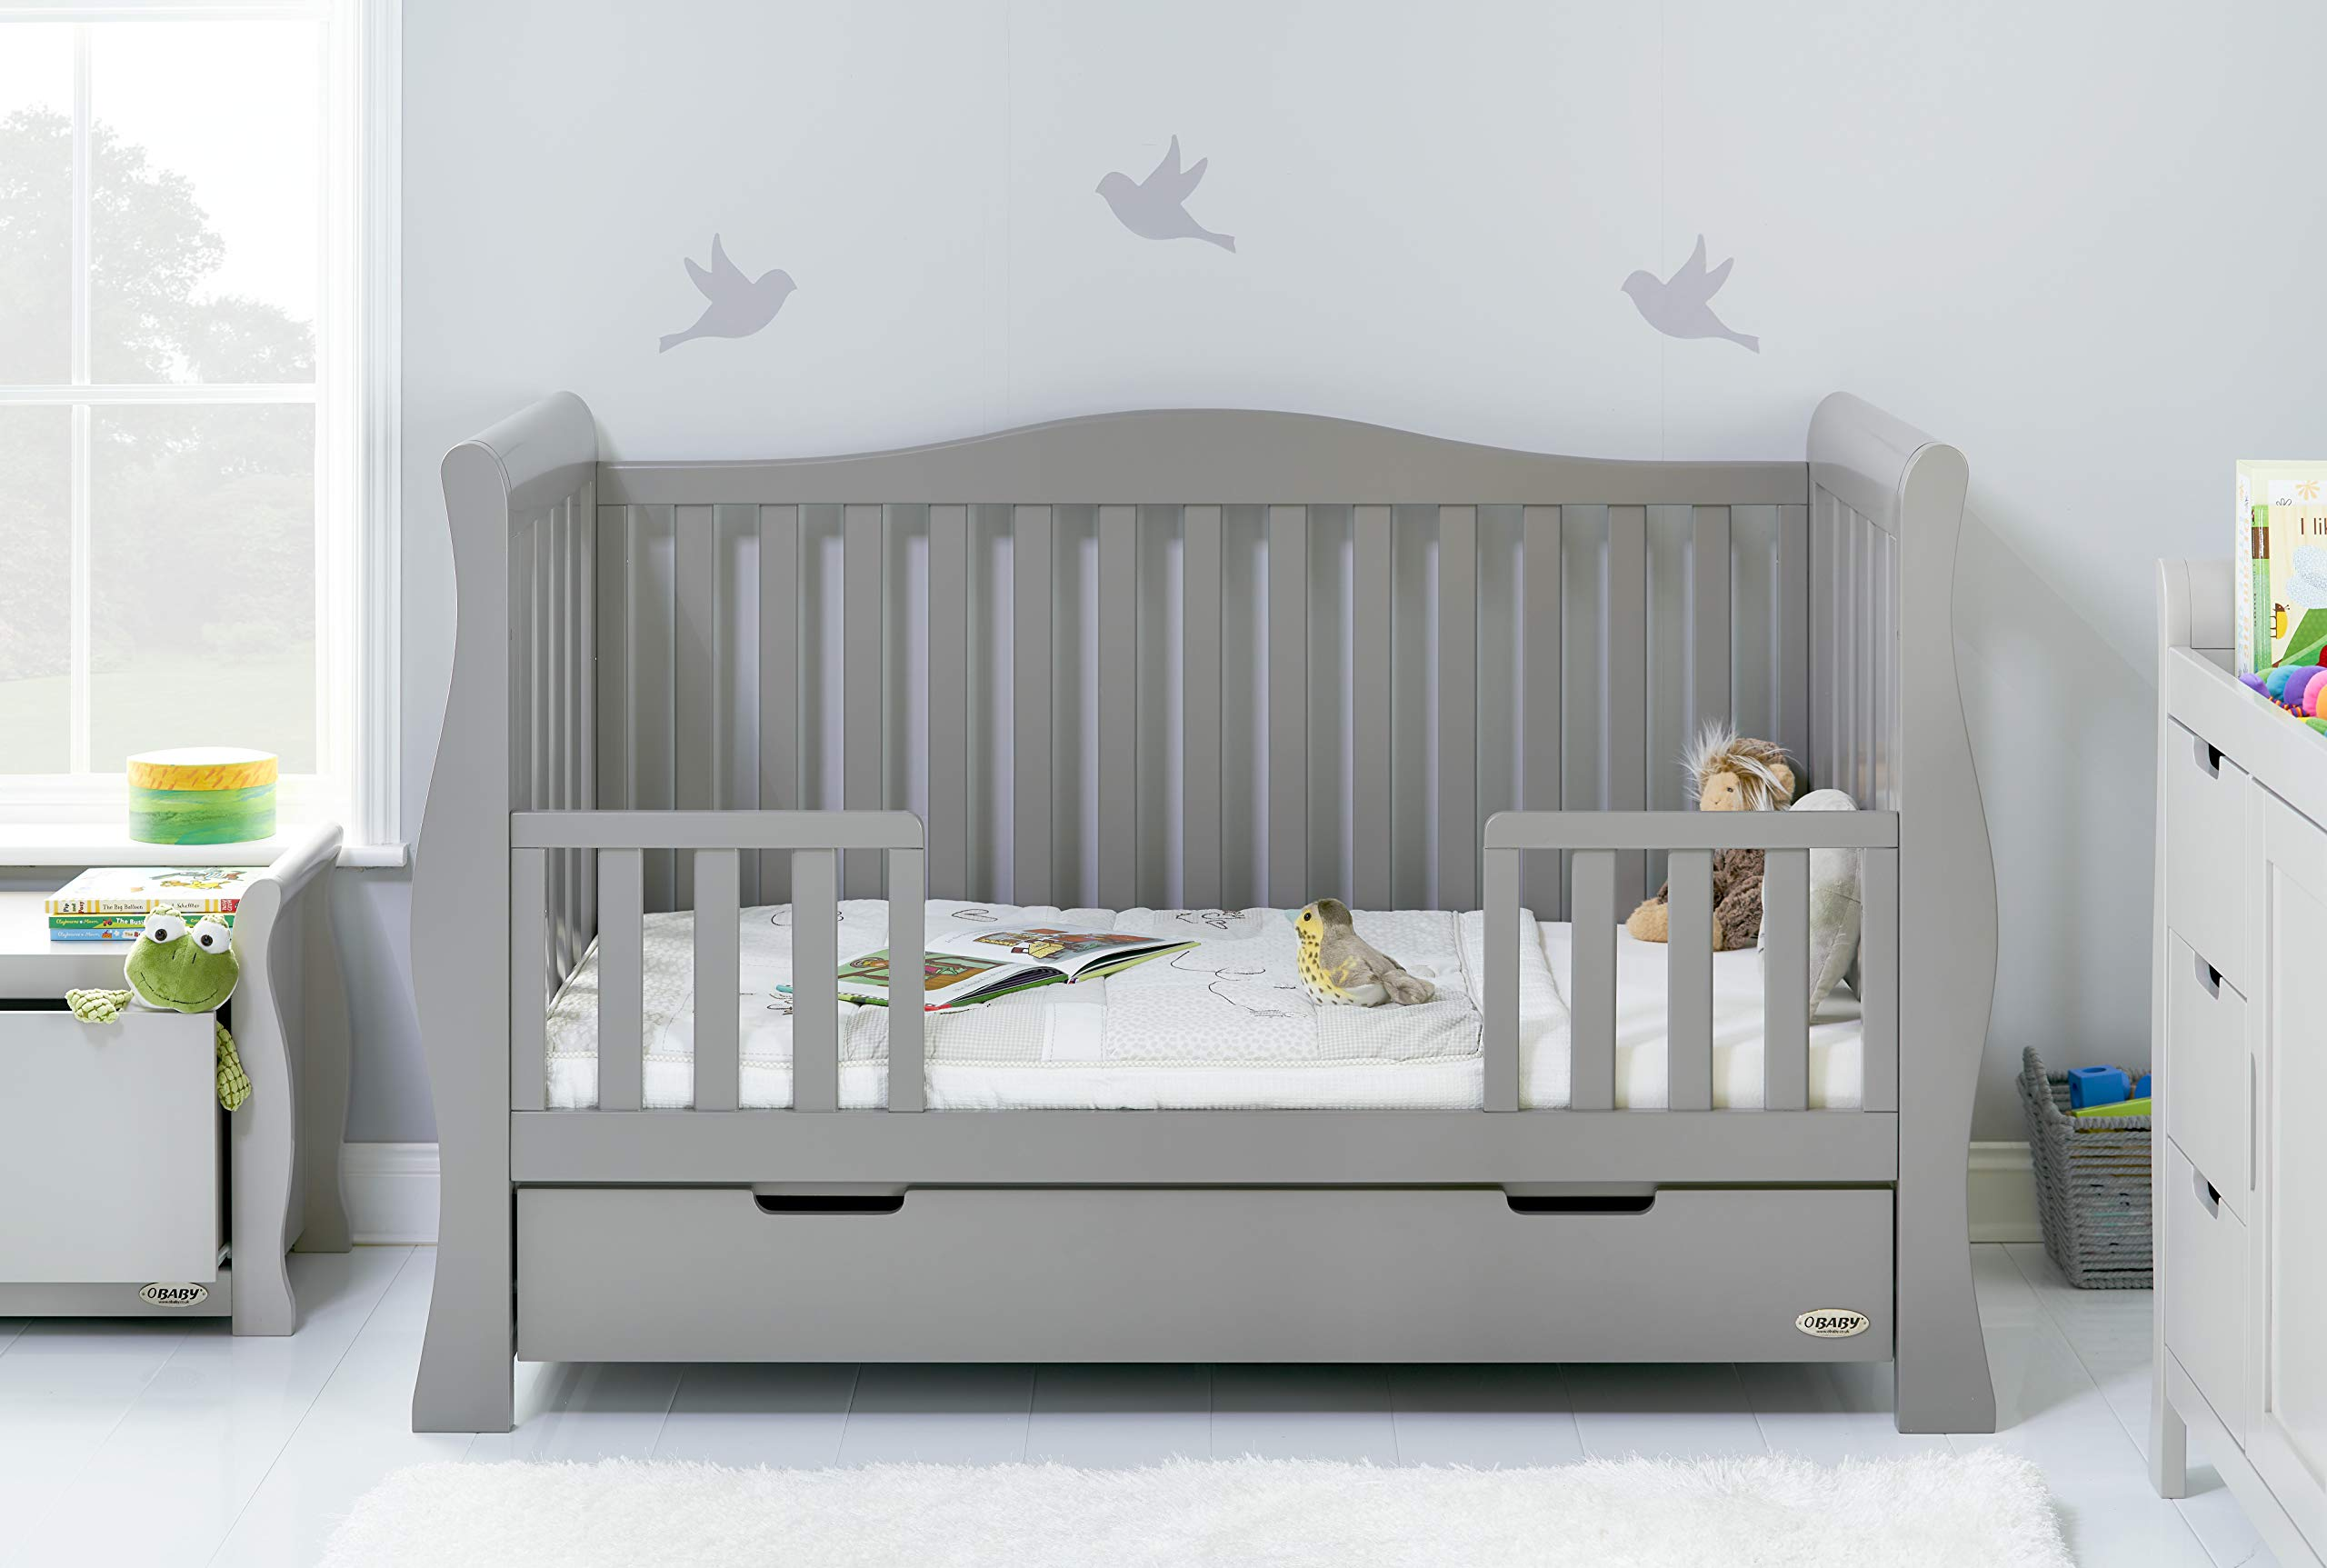 Obaby Stamford Luxe Sleigh Cot Bed, Warm Grey Obaby Adjustable 3 position mattress height Sides remove to transform into toddler bed Includes matching under drawer for storage 2